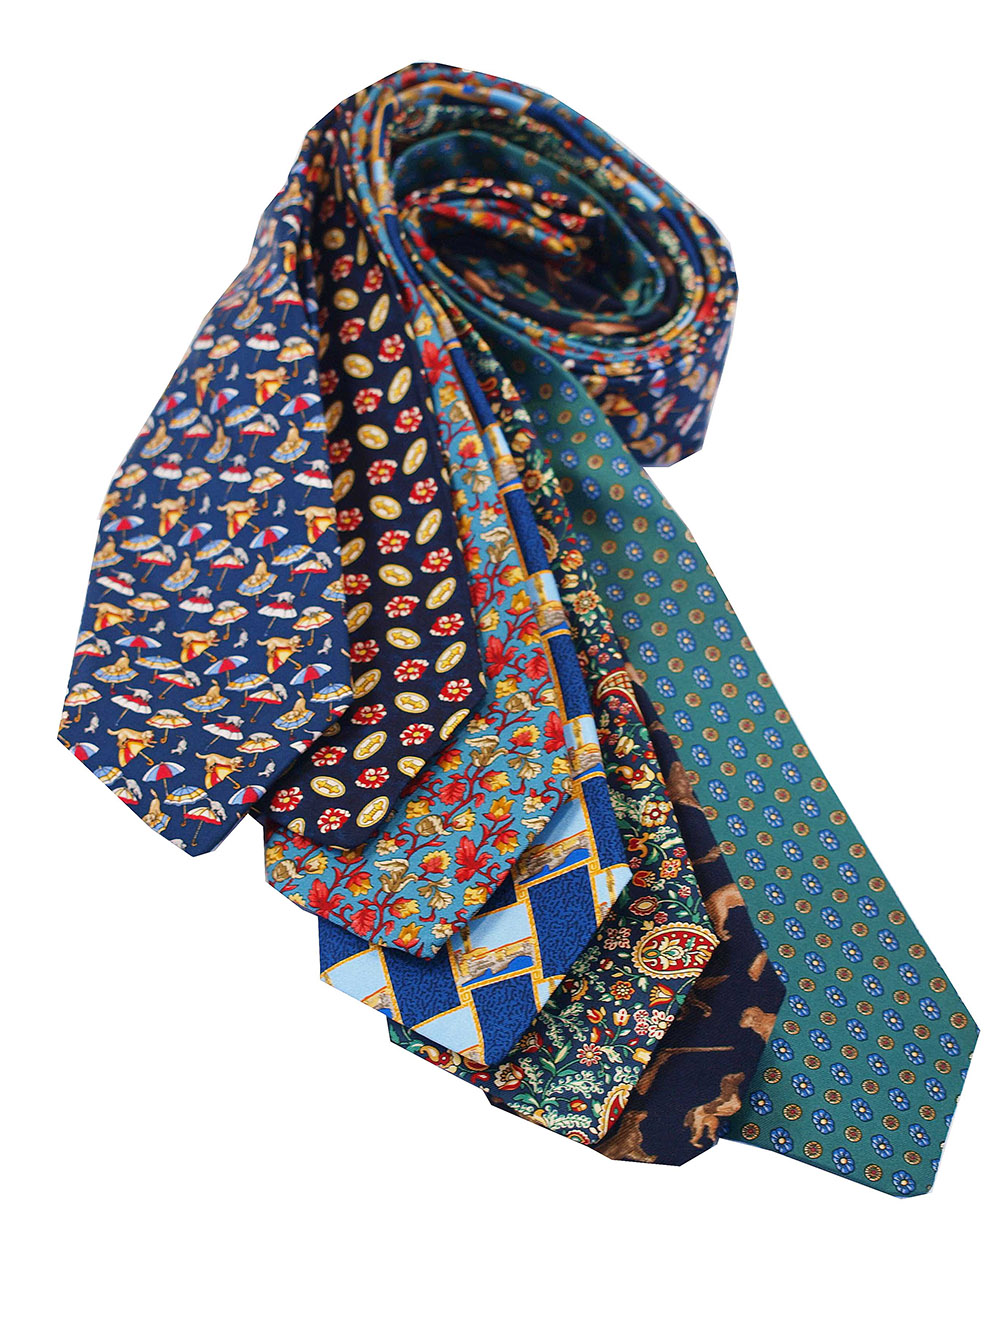 Cavenagh of London 7Piece 100% Pure Silk Ties Made in UK (239D)RRP£139.99